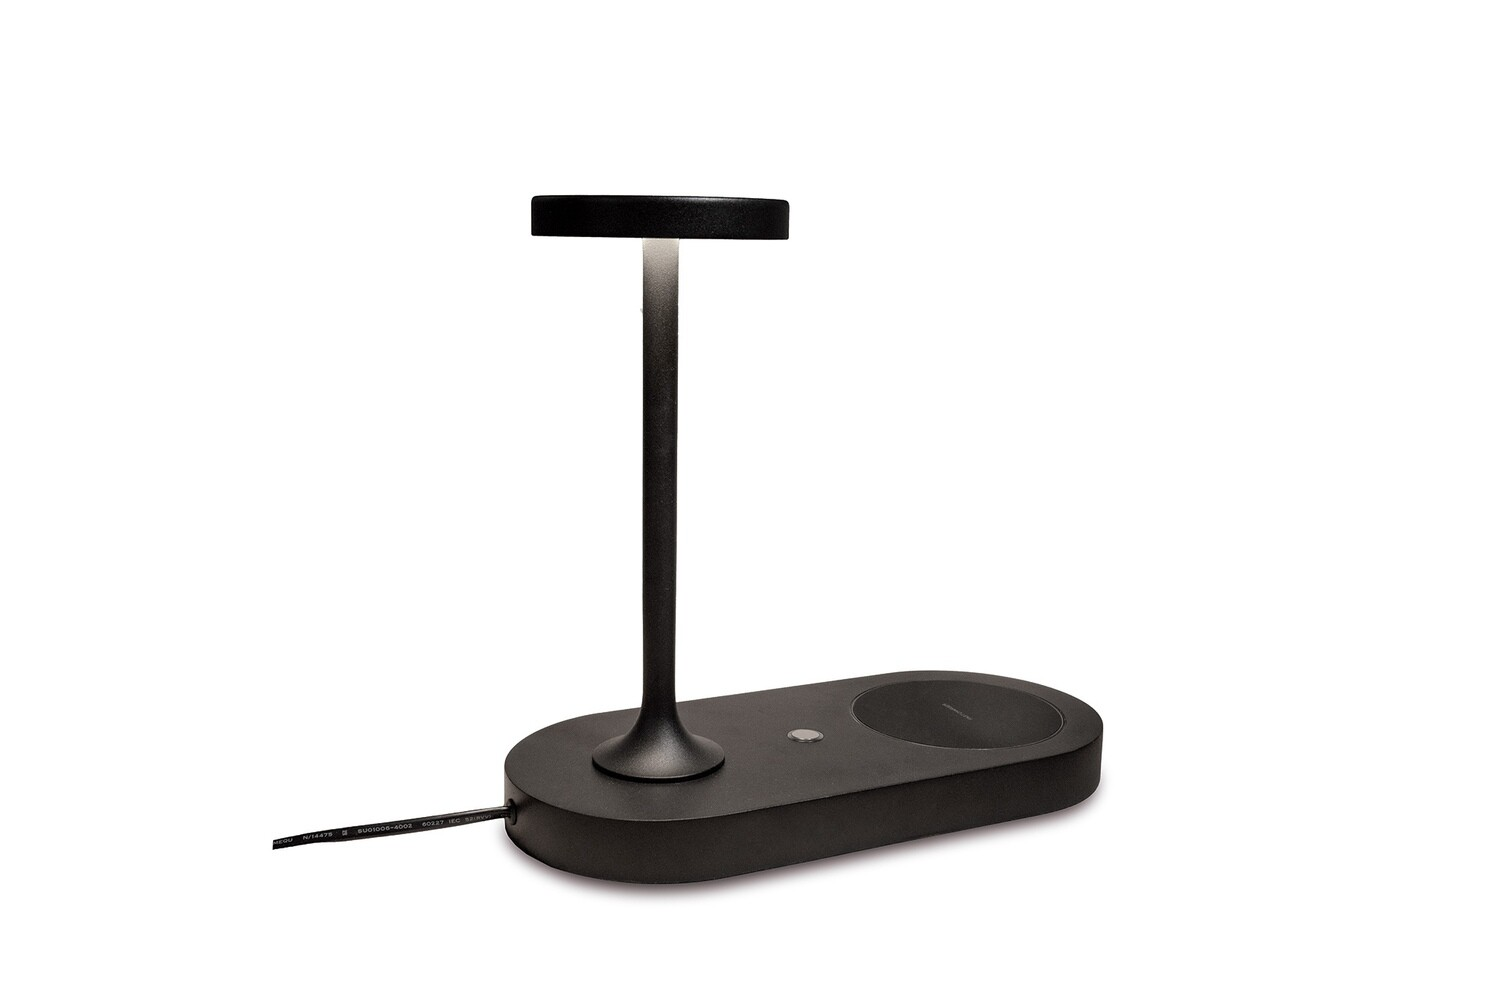 Ceres Table Lamp With Mobile Phone Induction Charger & USB Charger, 6W LED, 3000K, 450lm, Black